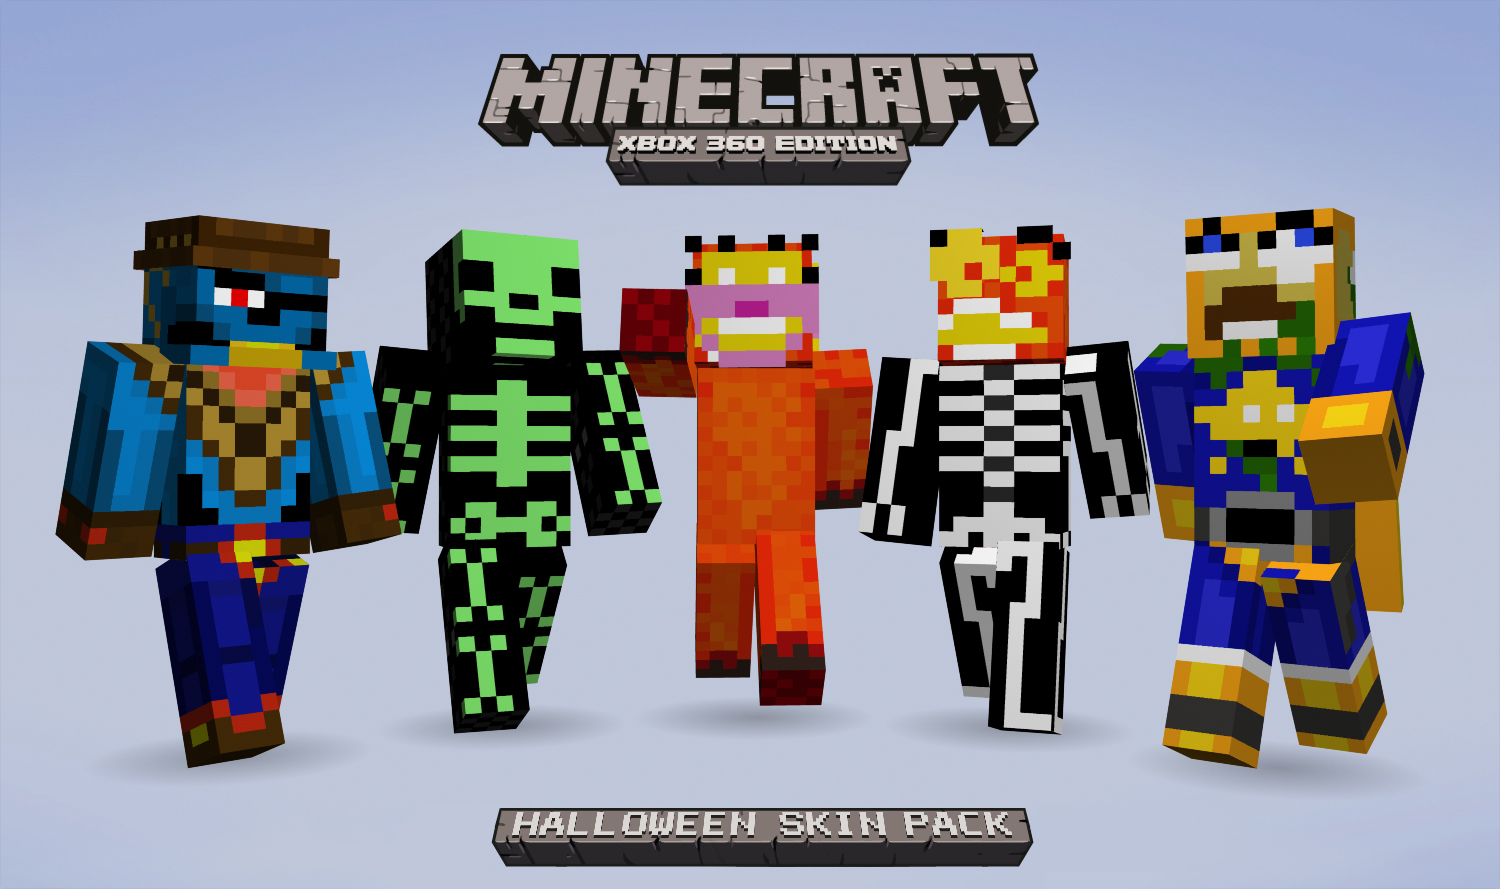 Minecraft Xbox 9 gets 9 Halloween skins, proceeds go to charity